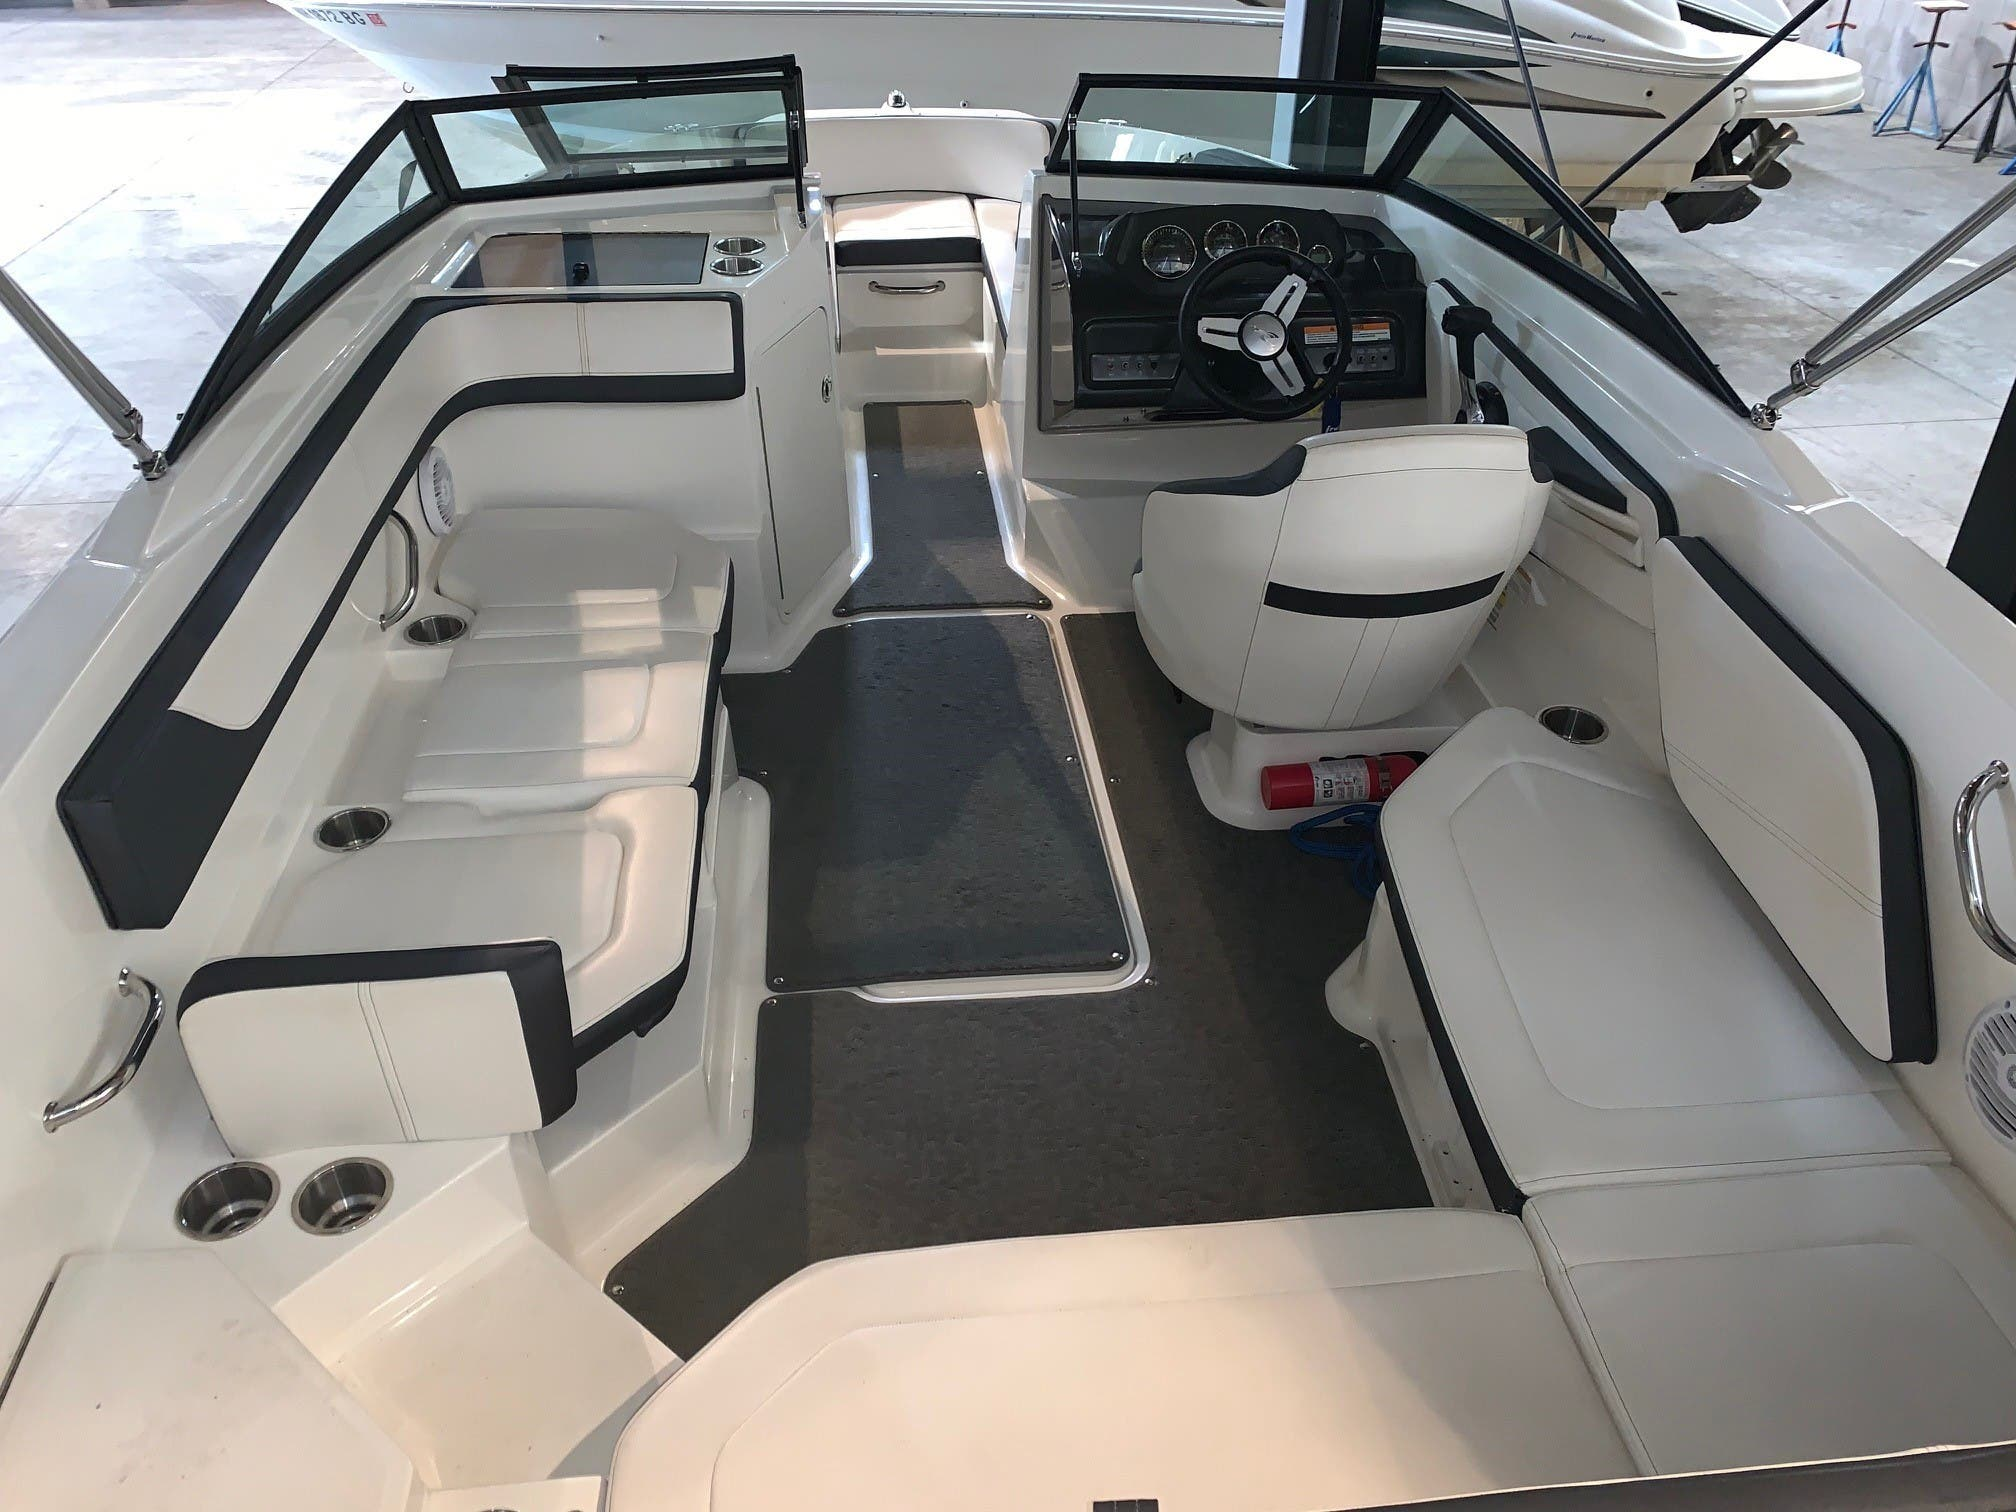 2016 Sea Ray boat for sale, model of the boat is 210spx & Image # 6 of 8